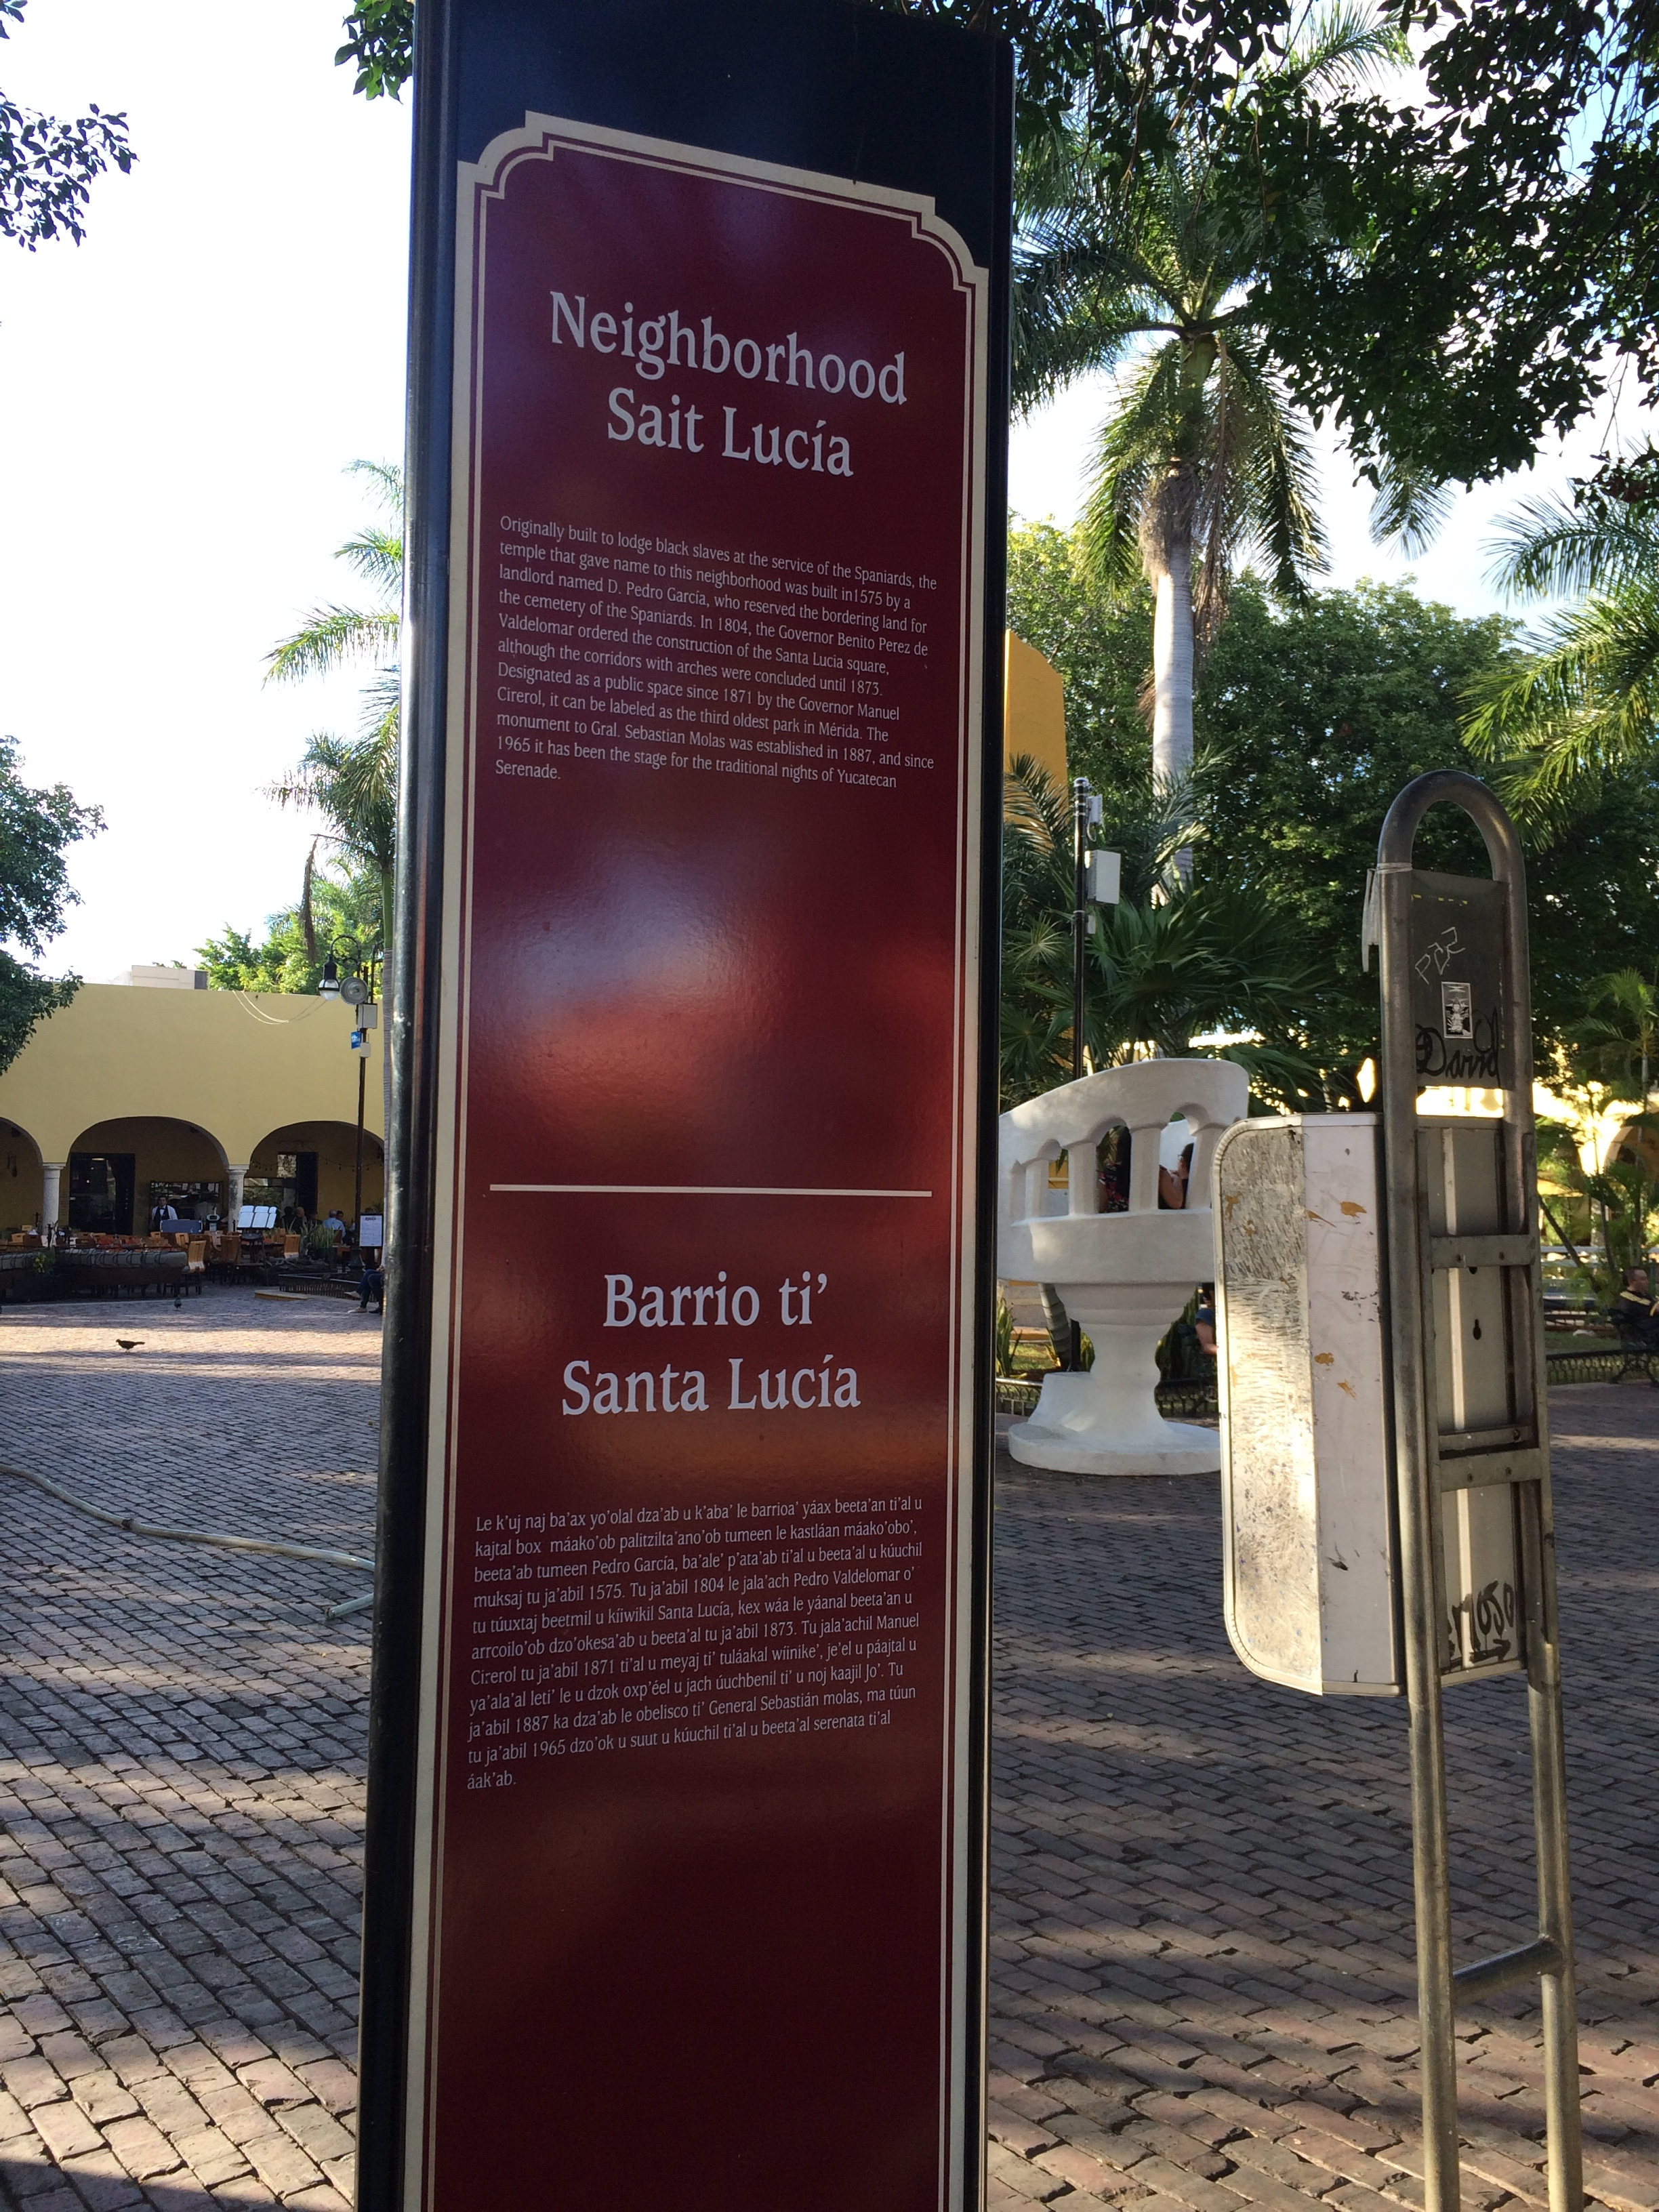 The Saint Lucia Neighborhood Marker